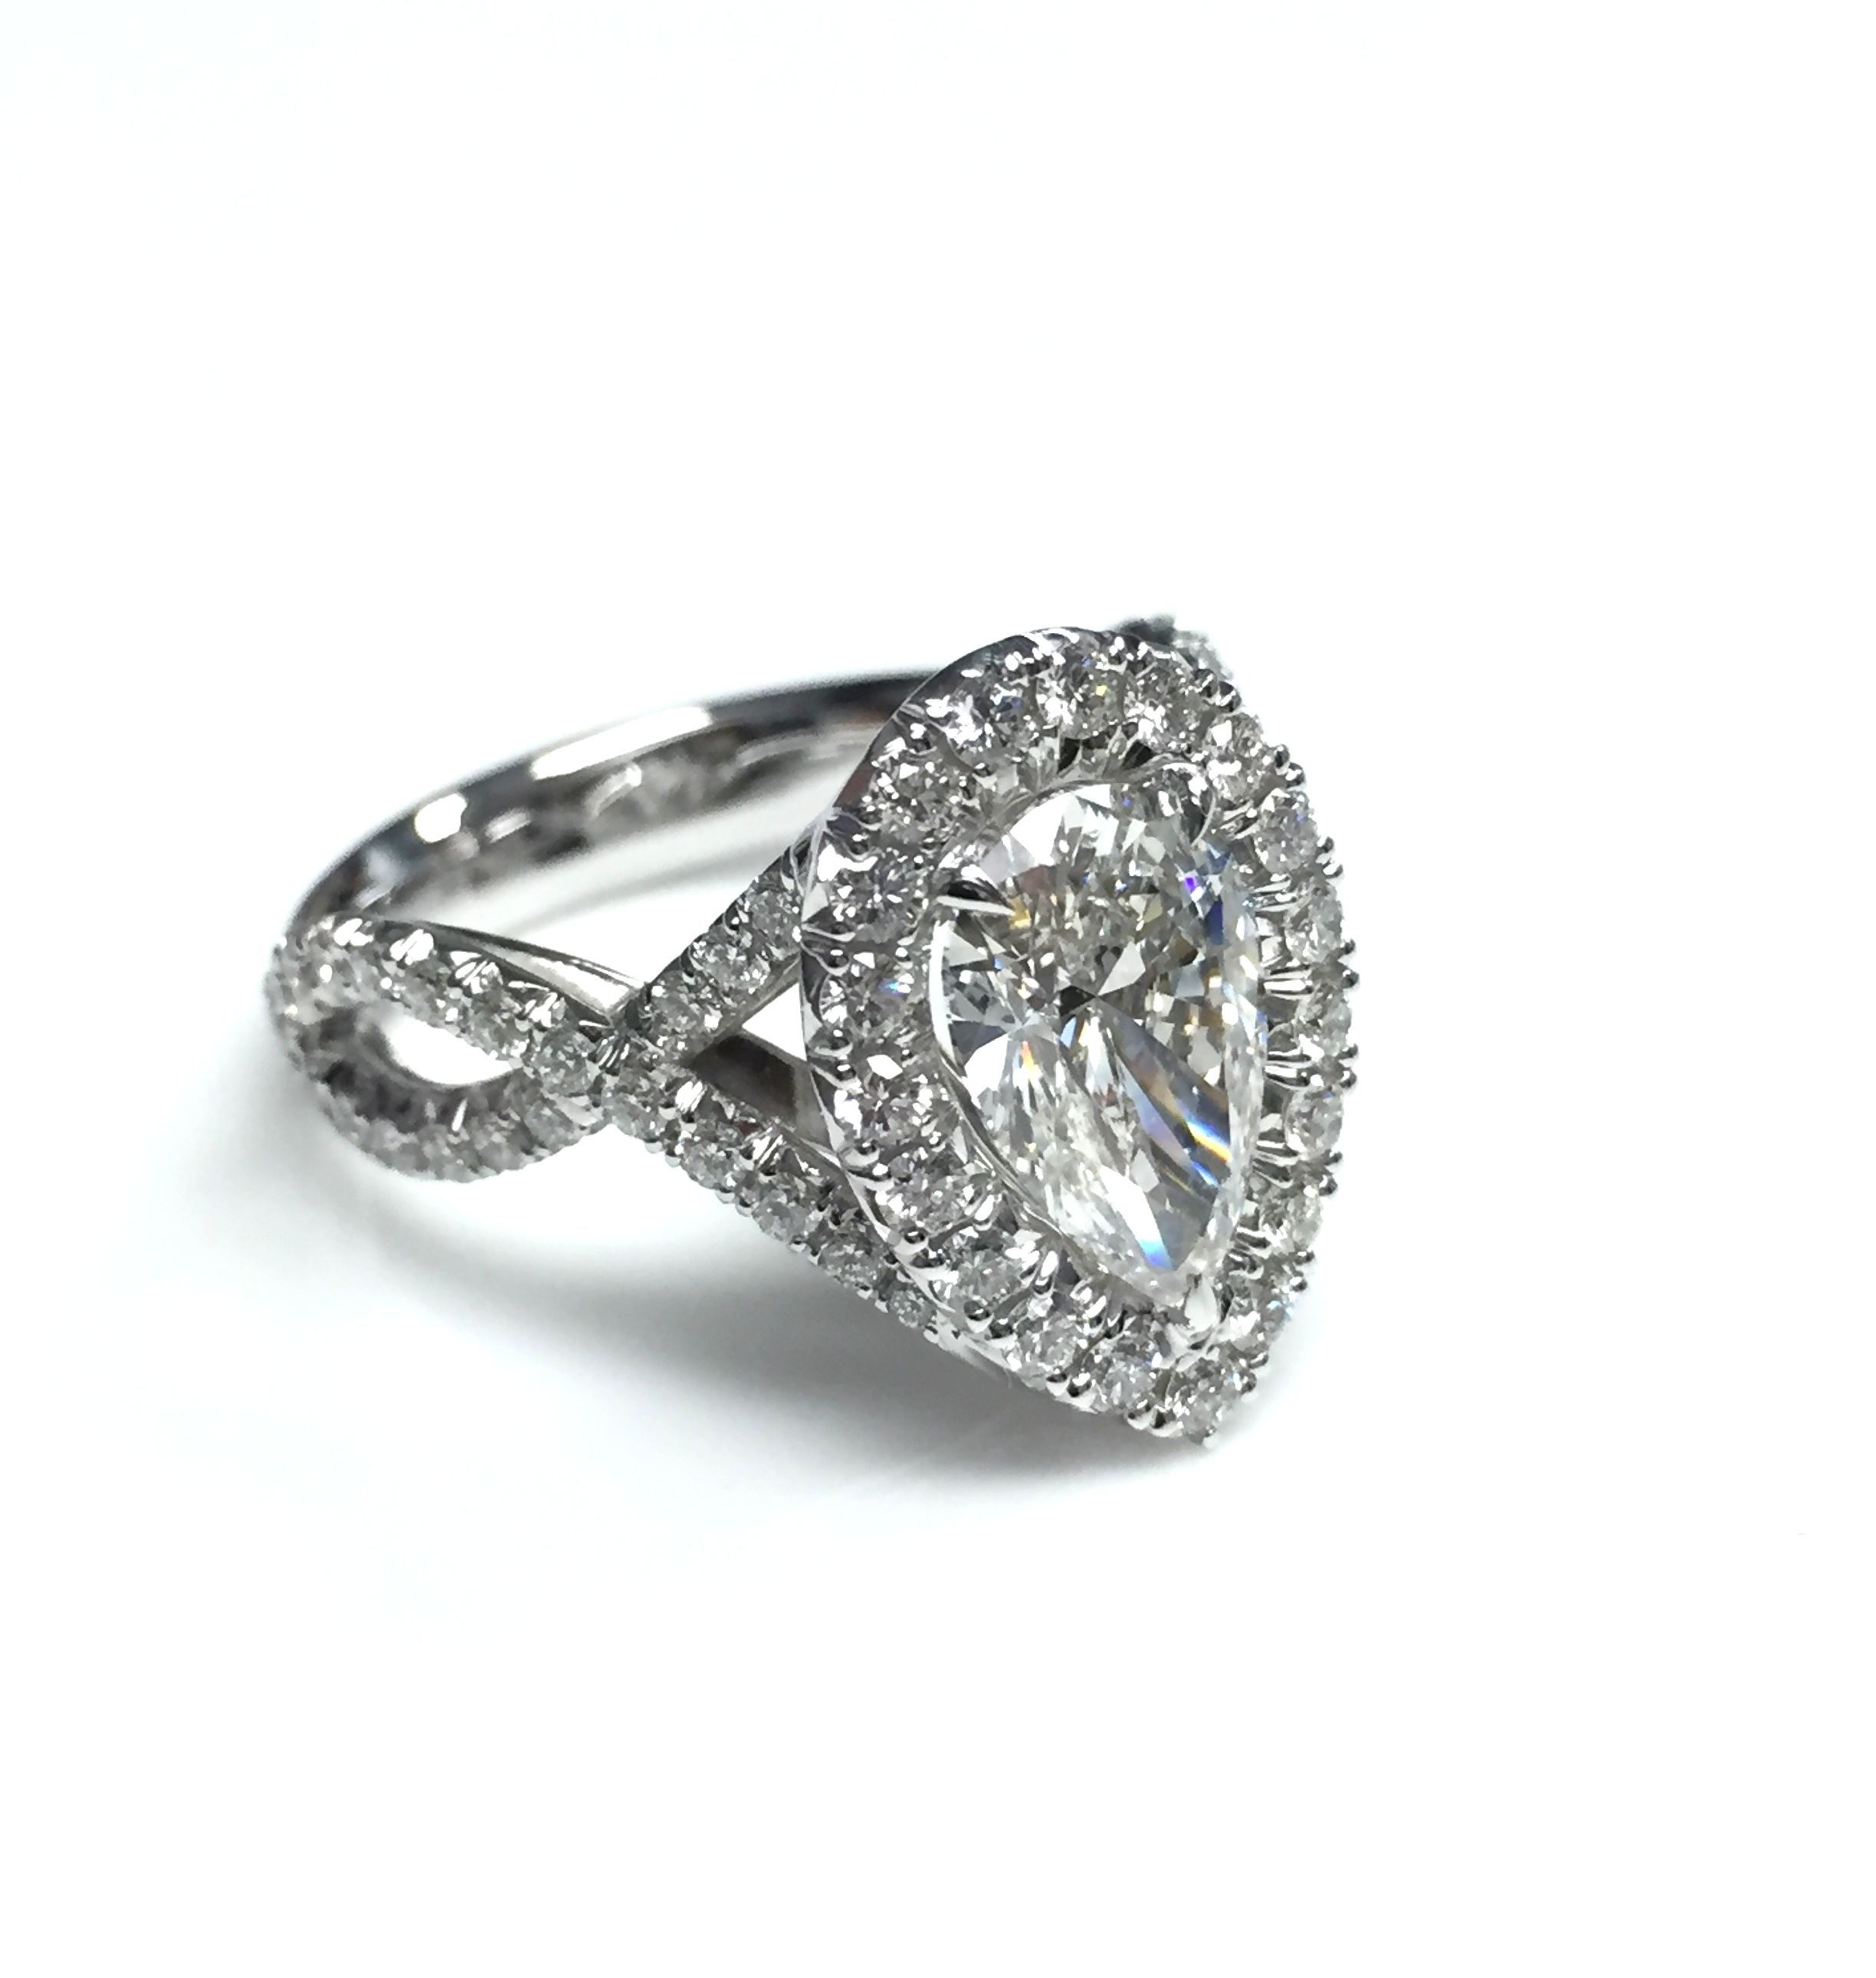 created rings t engagement infinity ring white com silver carat g walmart sterling w and sapphire miabella ip